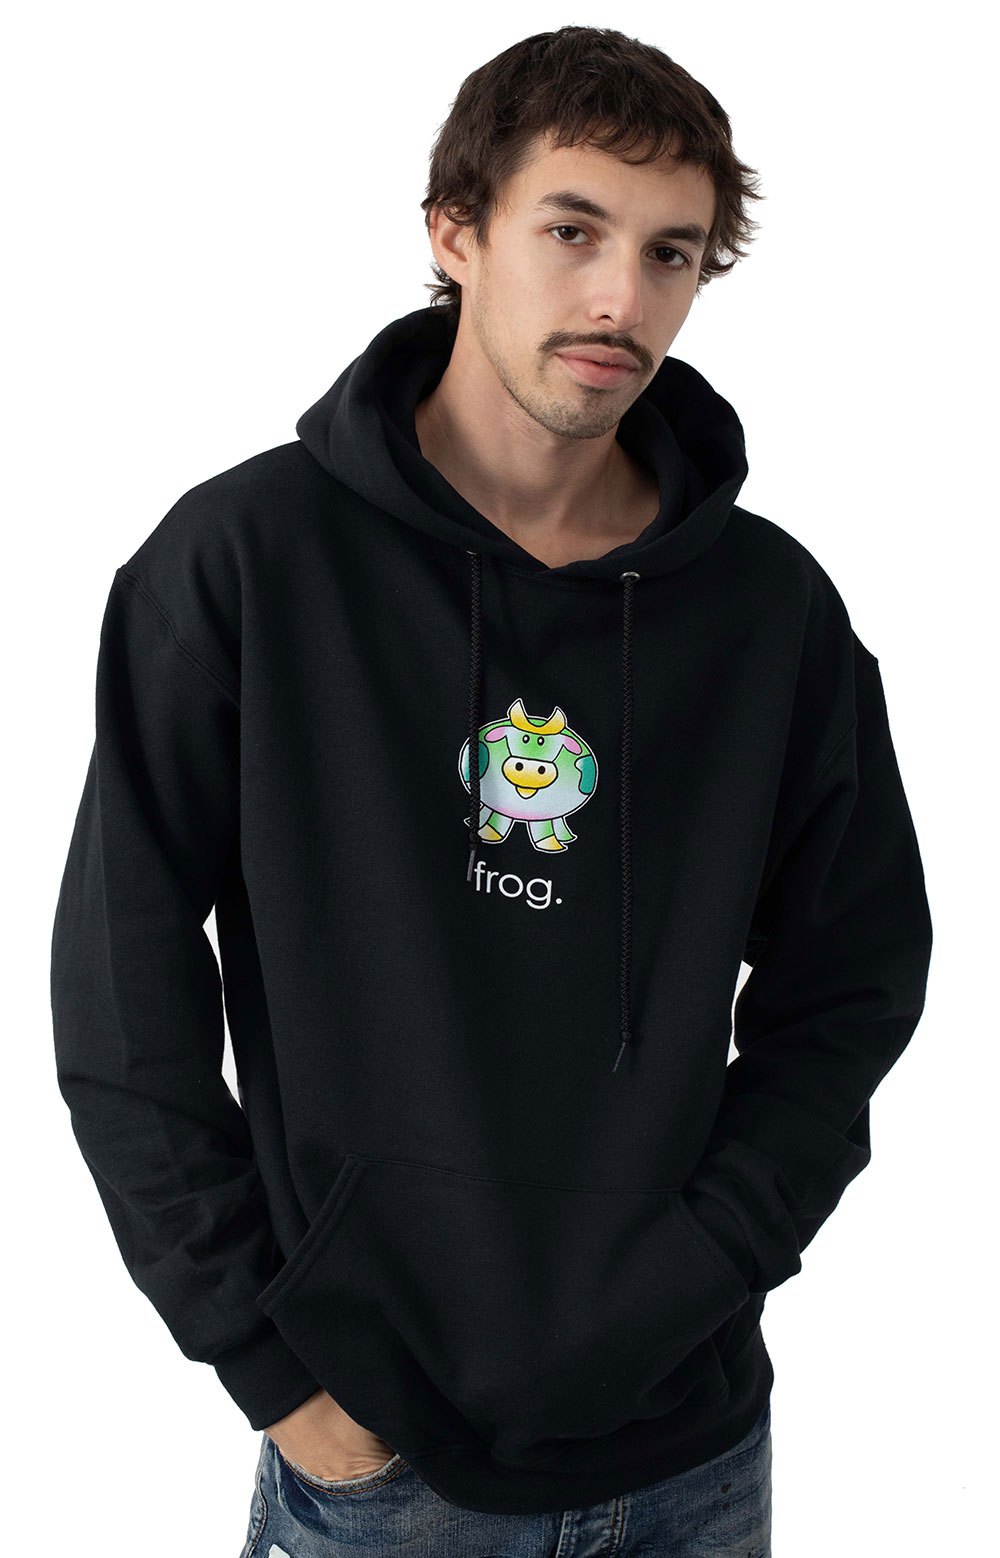 The Cow Pullover Hoodie - Black